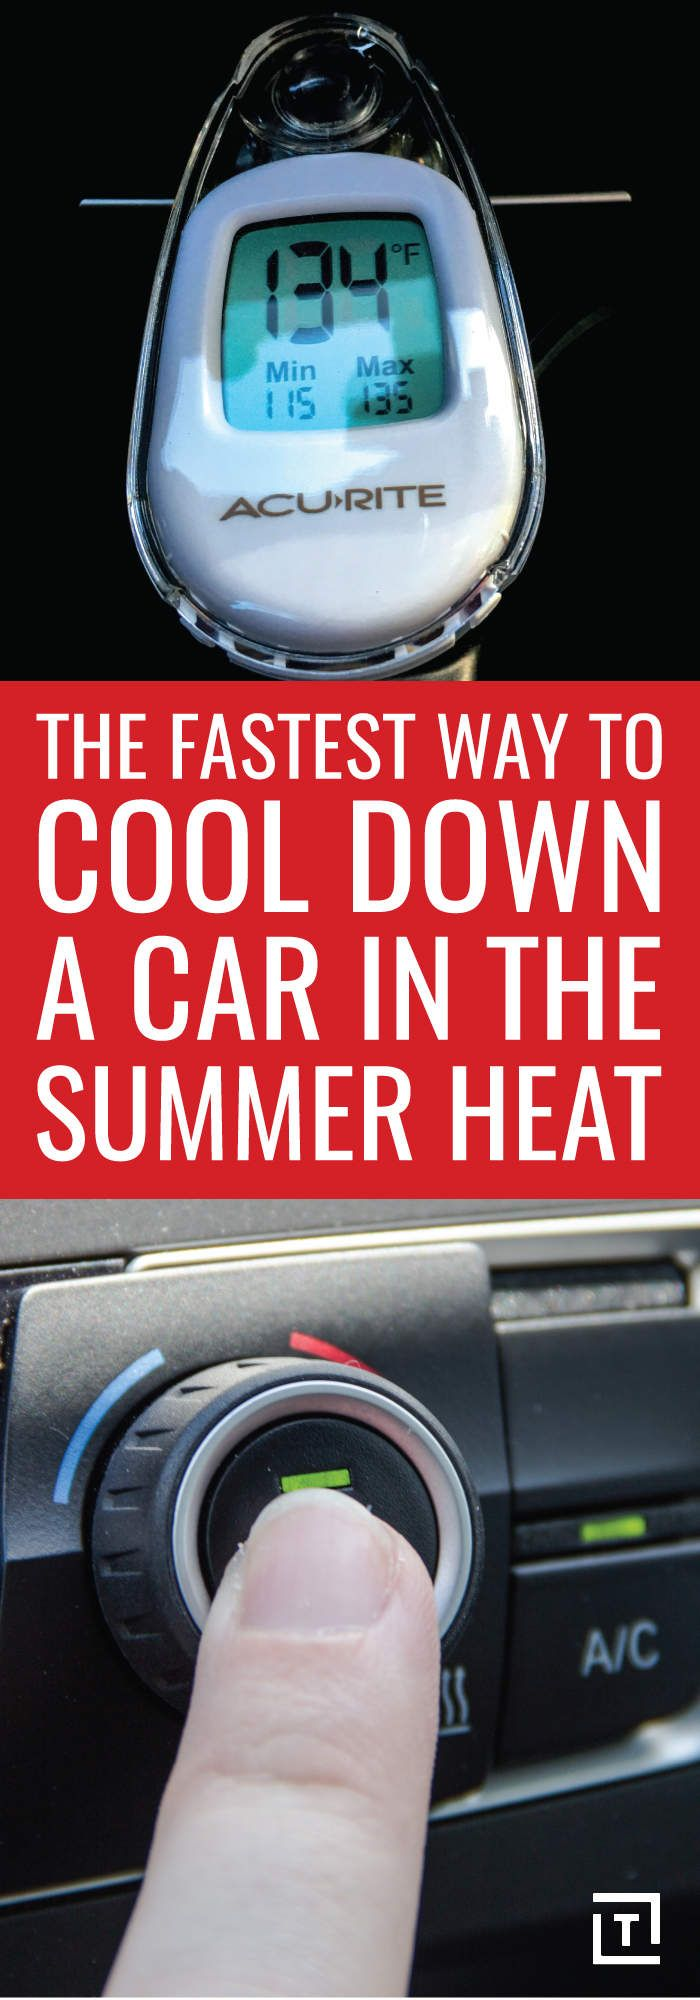 We Found the Fastest Way to Cool a Car Down in Summer Heat